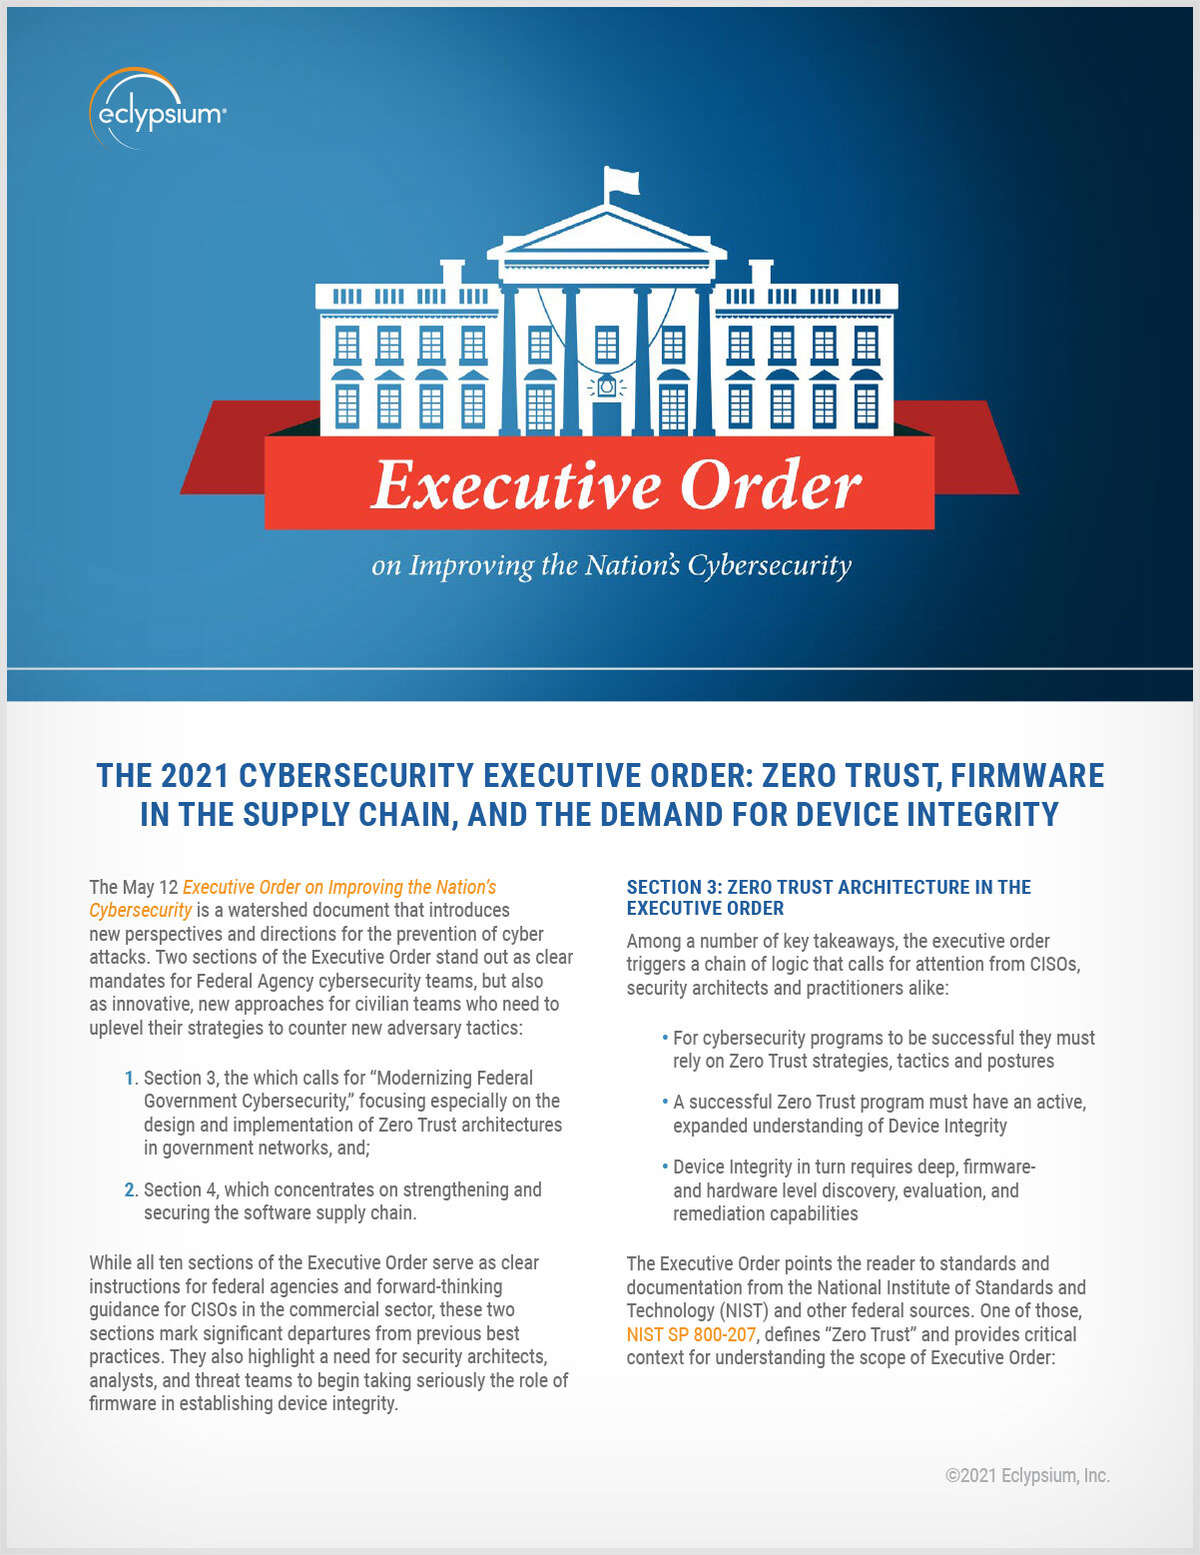 The 2021 Cybersecurity Executive Order